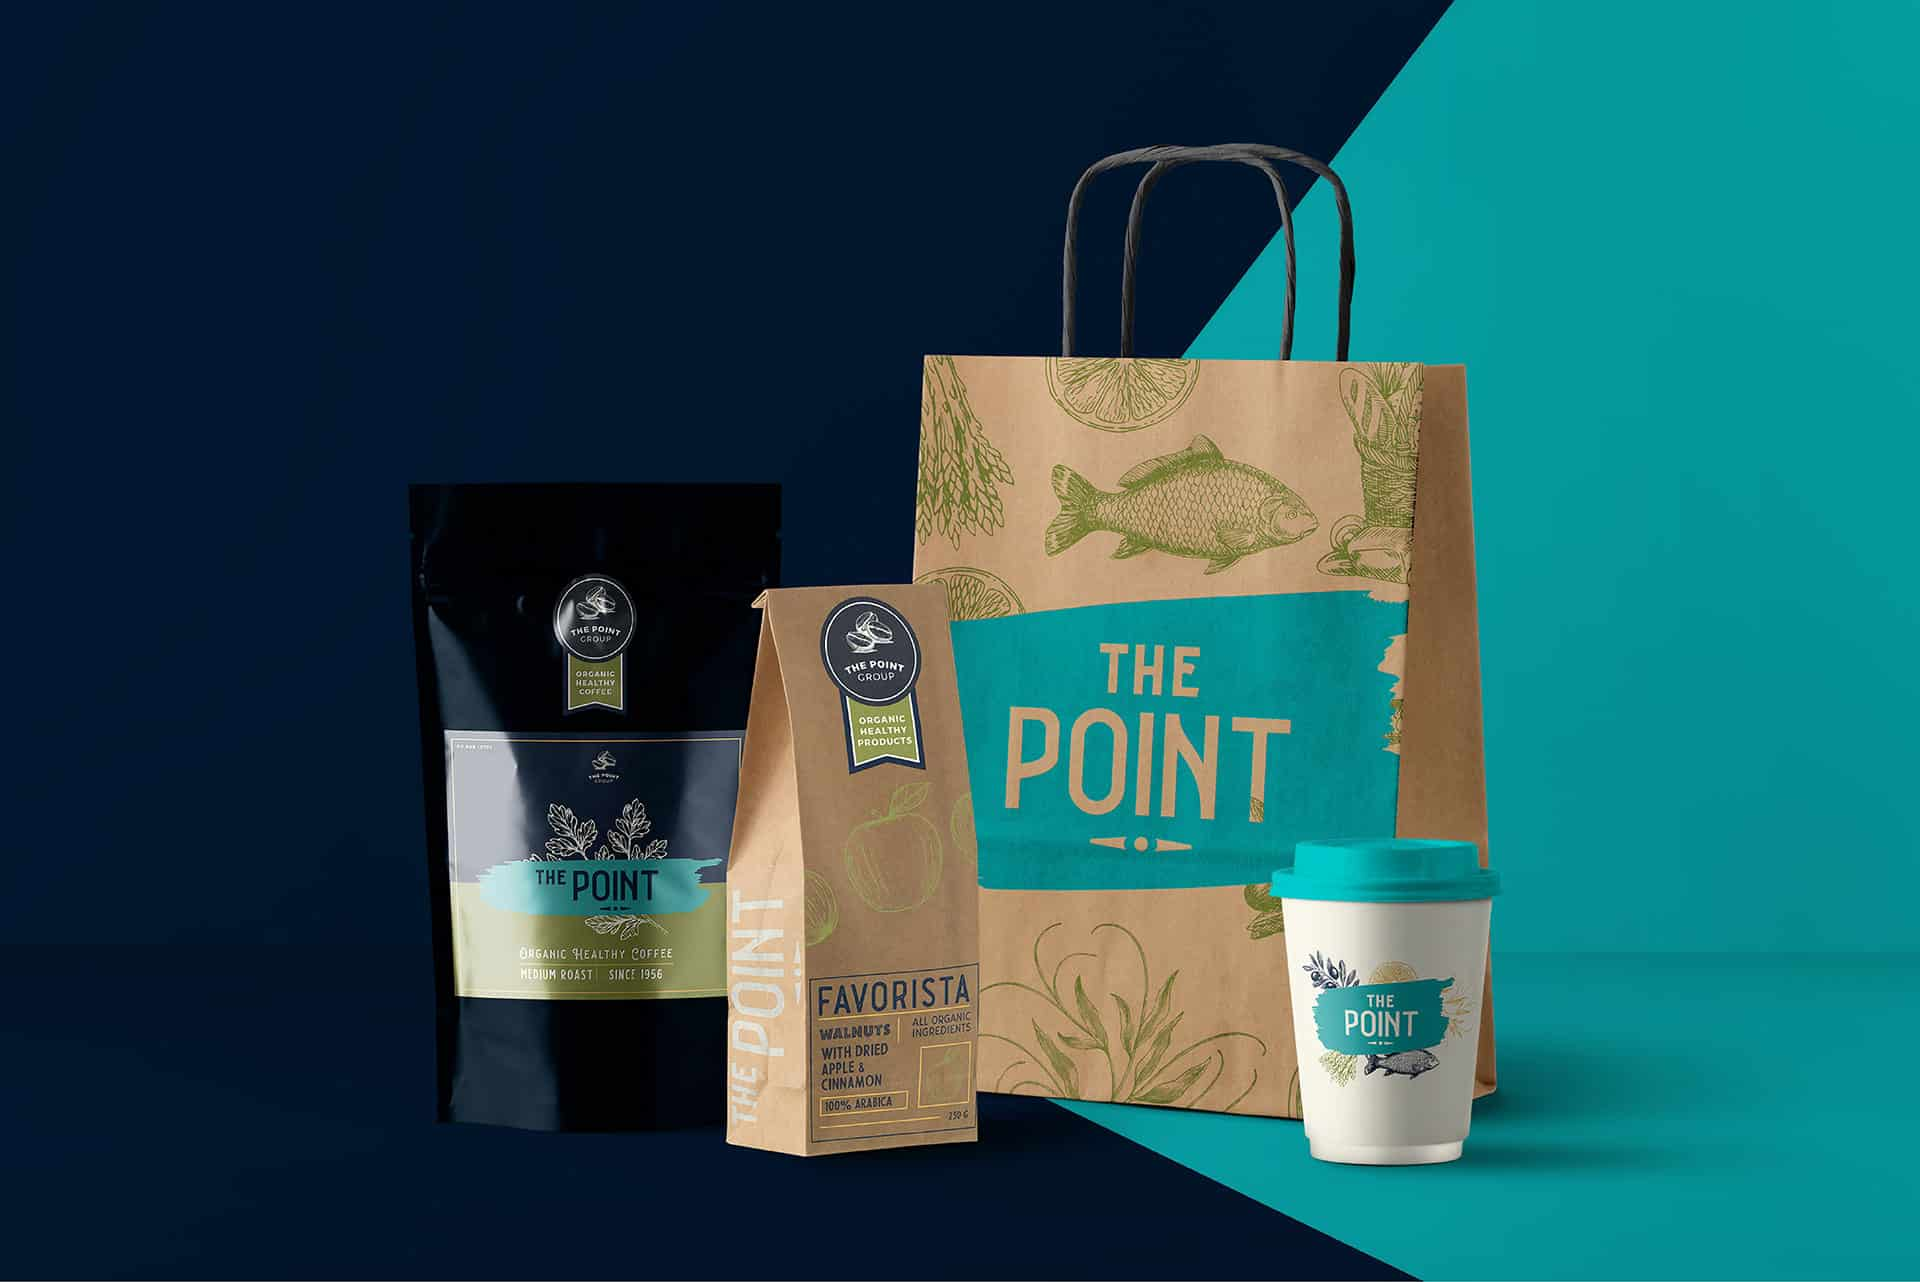 The Point - Branding Case Study